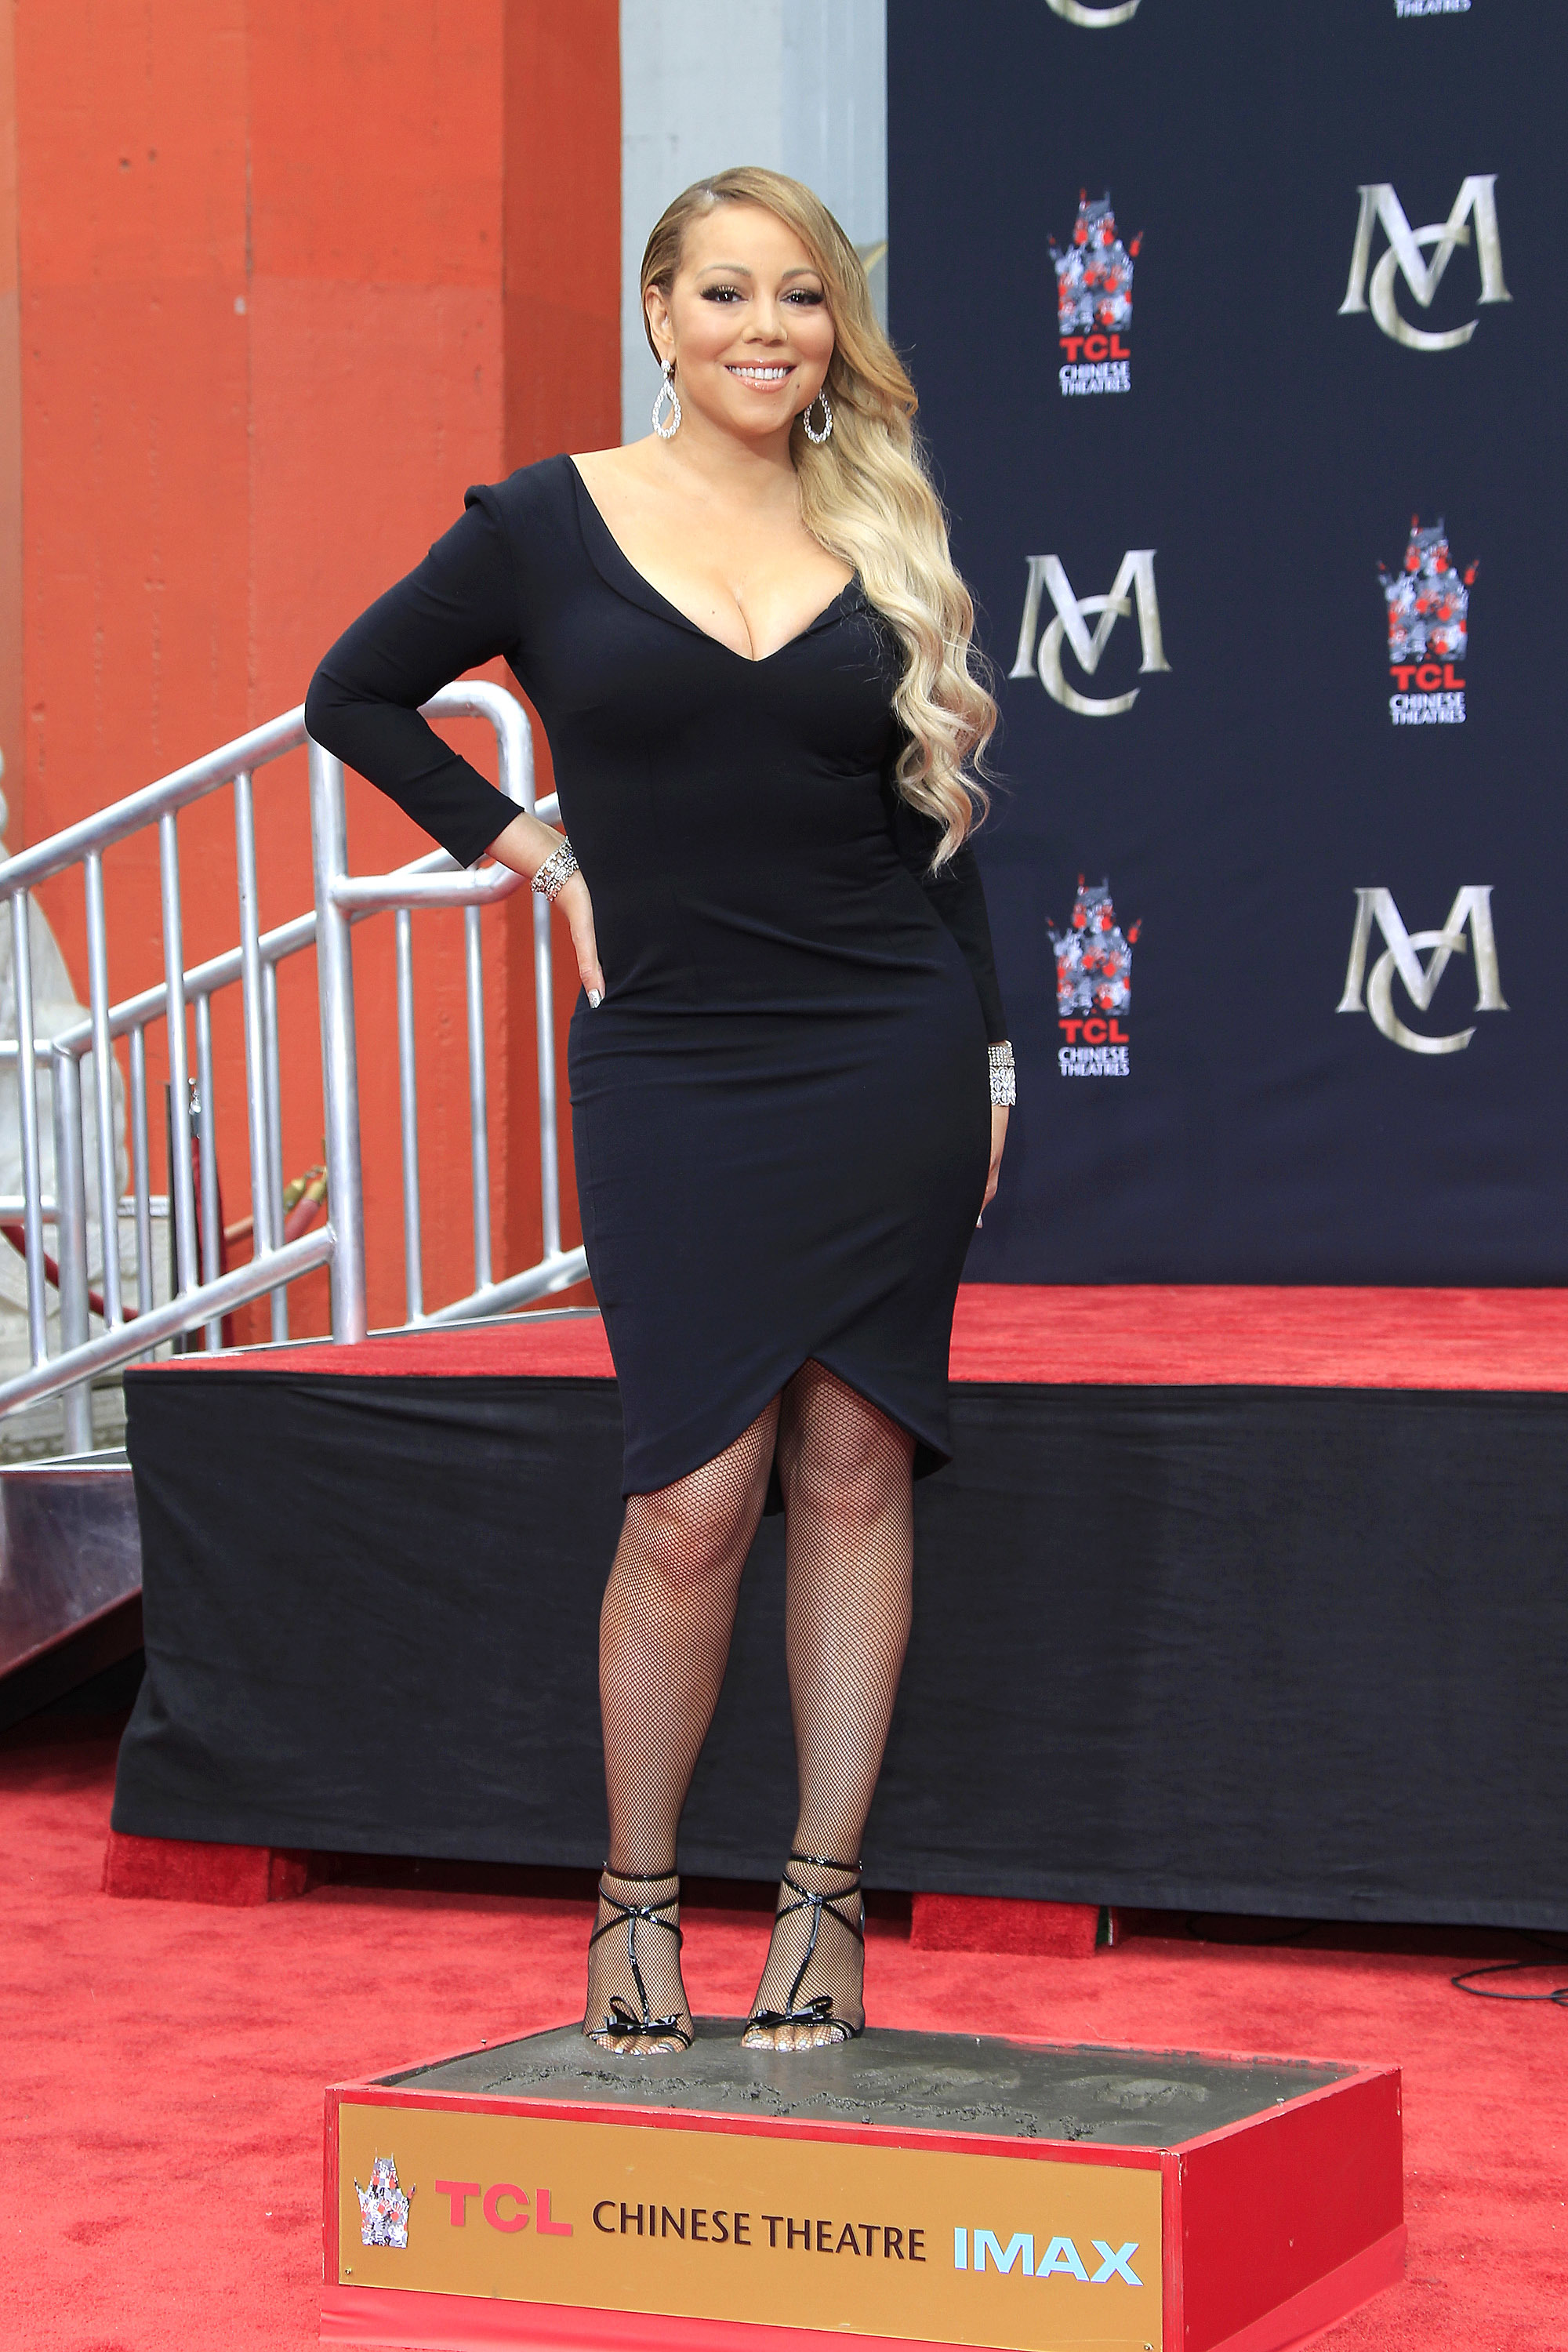 Mariah Carey is reportedly signing with Roc Nation